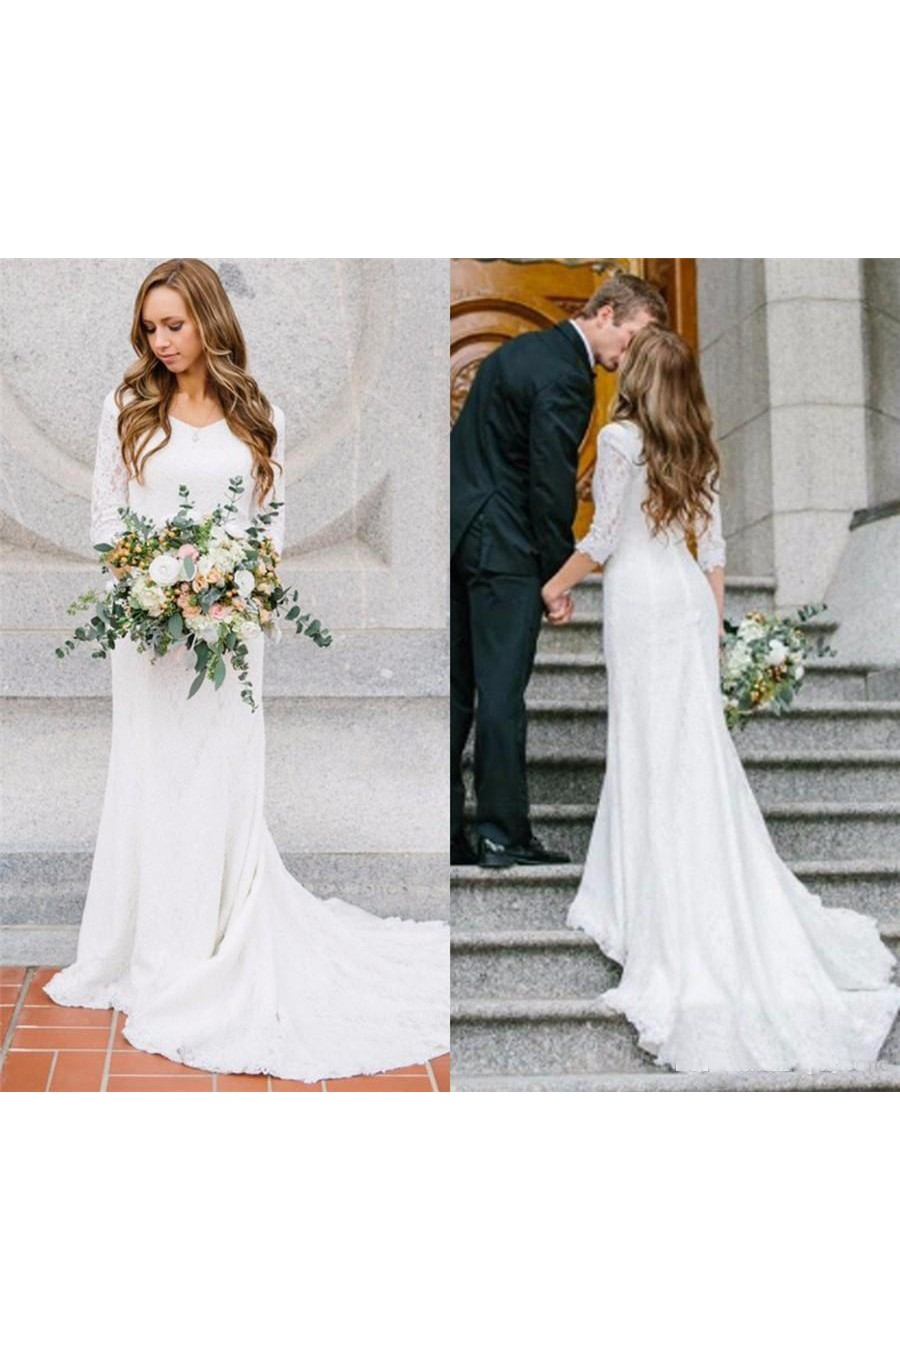 3c0c4684e369 Country Style Vintage Modest Bohemian Lace Chiffon Wedding Gown With Long  Sleeves - June Bridals